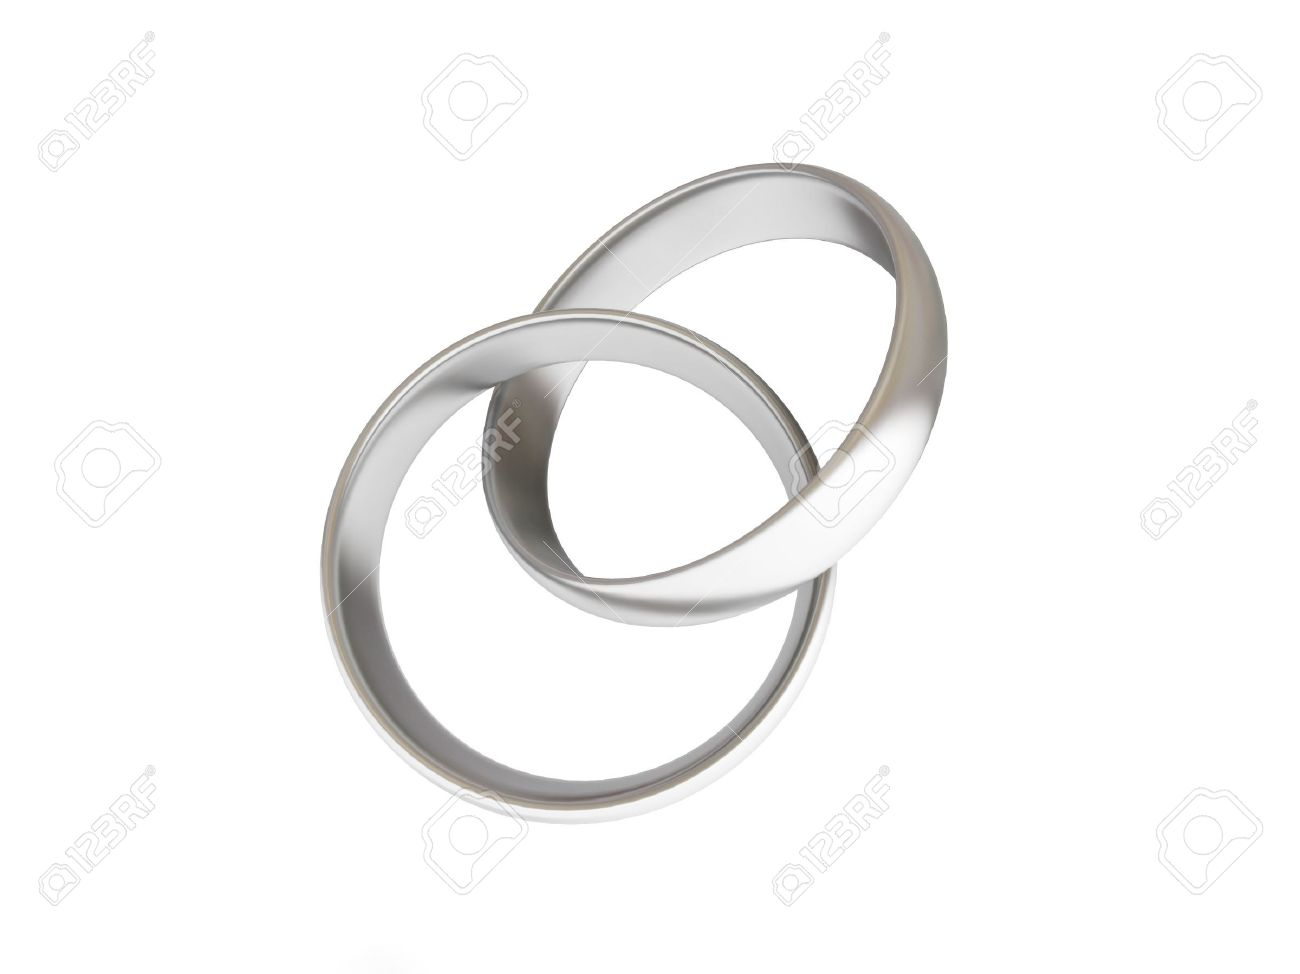 1300x974 Wedding Rings Intertwined Engagement Ring And Wedding Band Neil